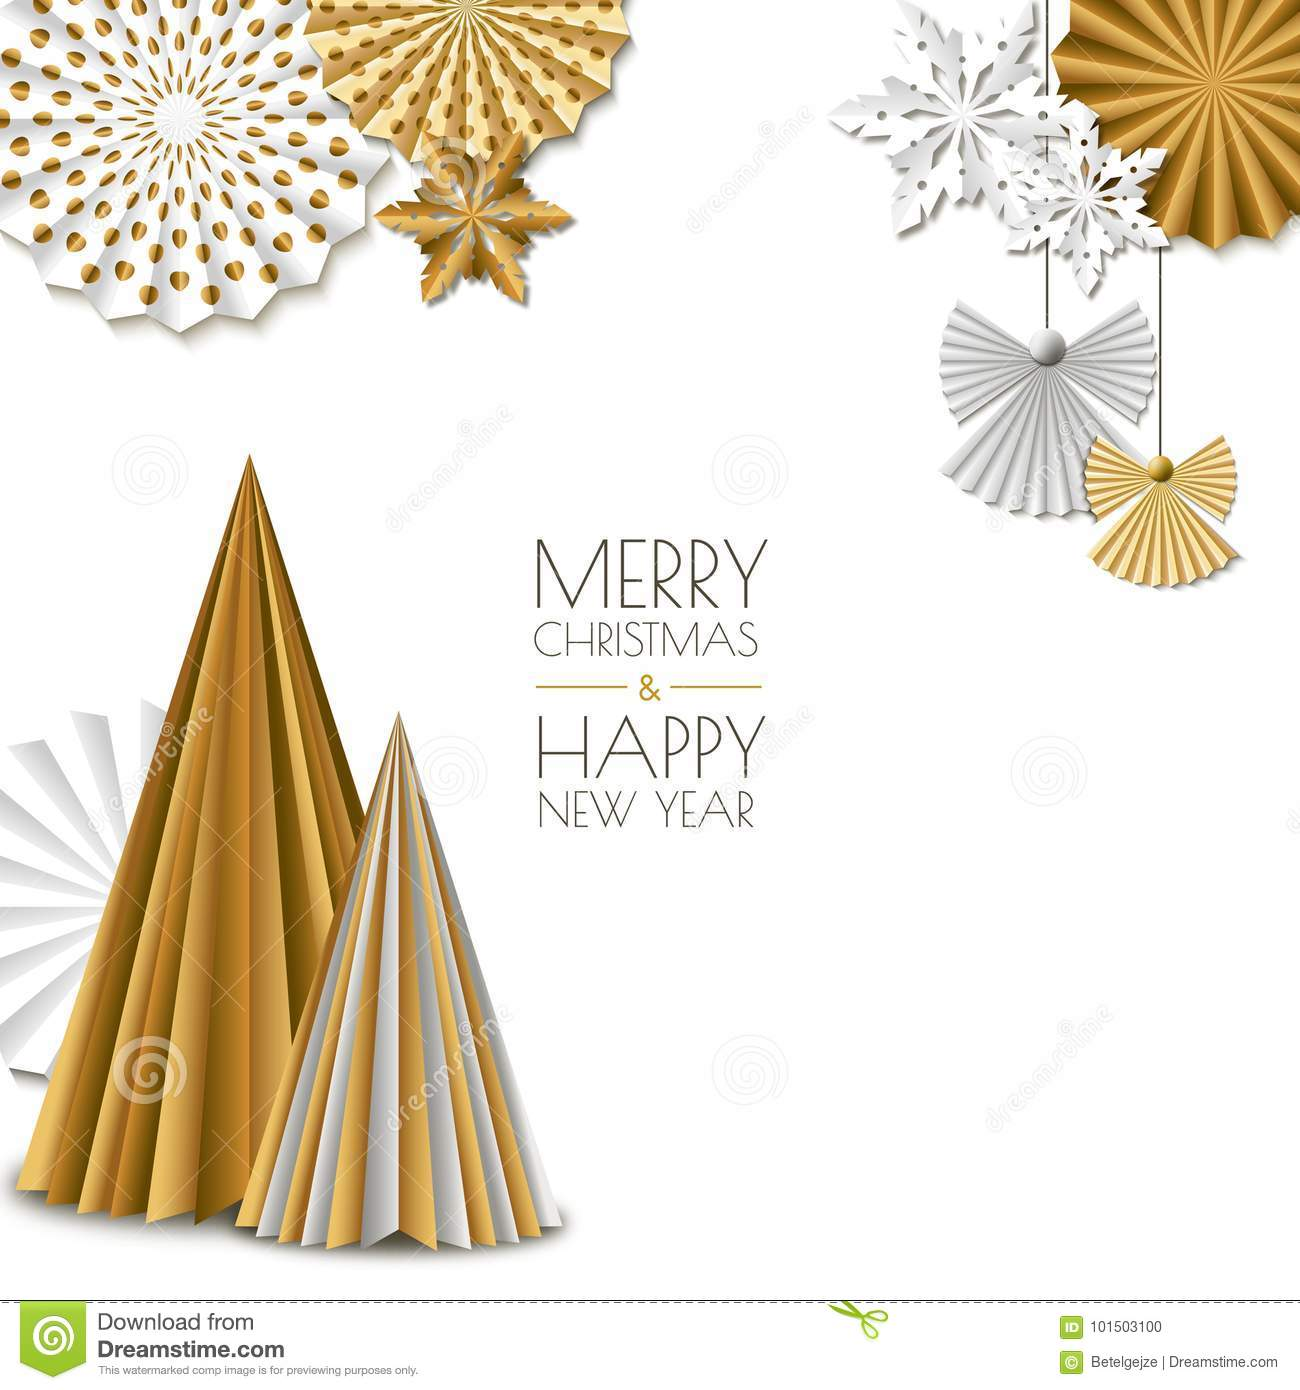 Merry Christmas, Happy New Year Greeting Card. Vector Golden Paper ...